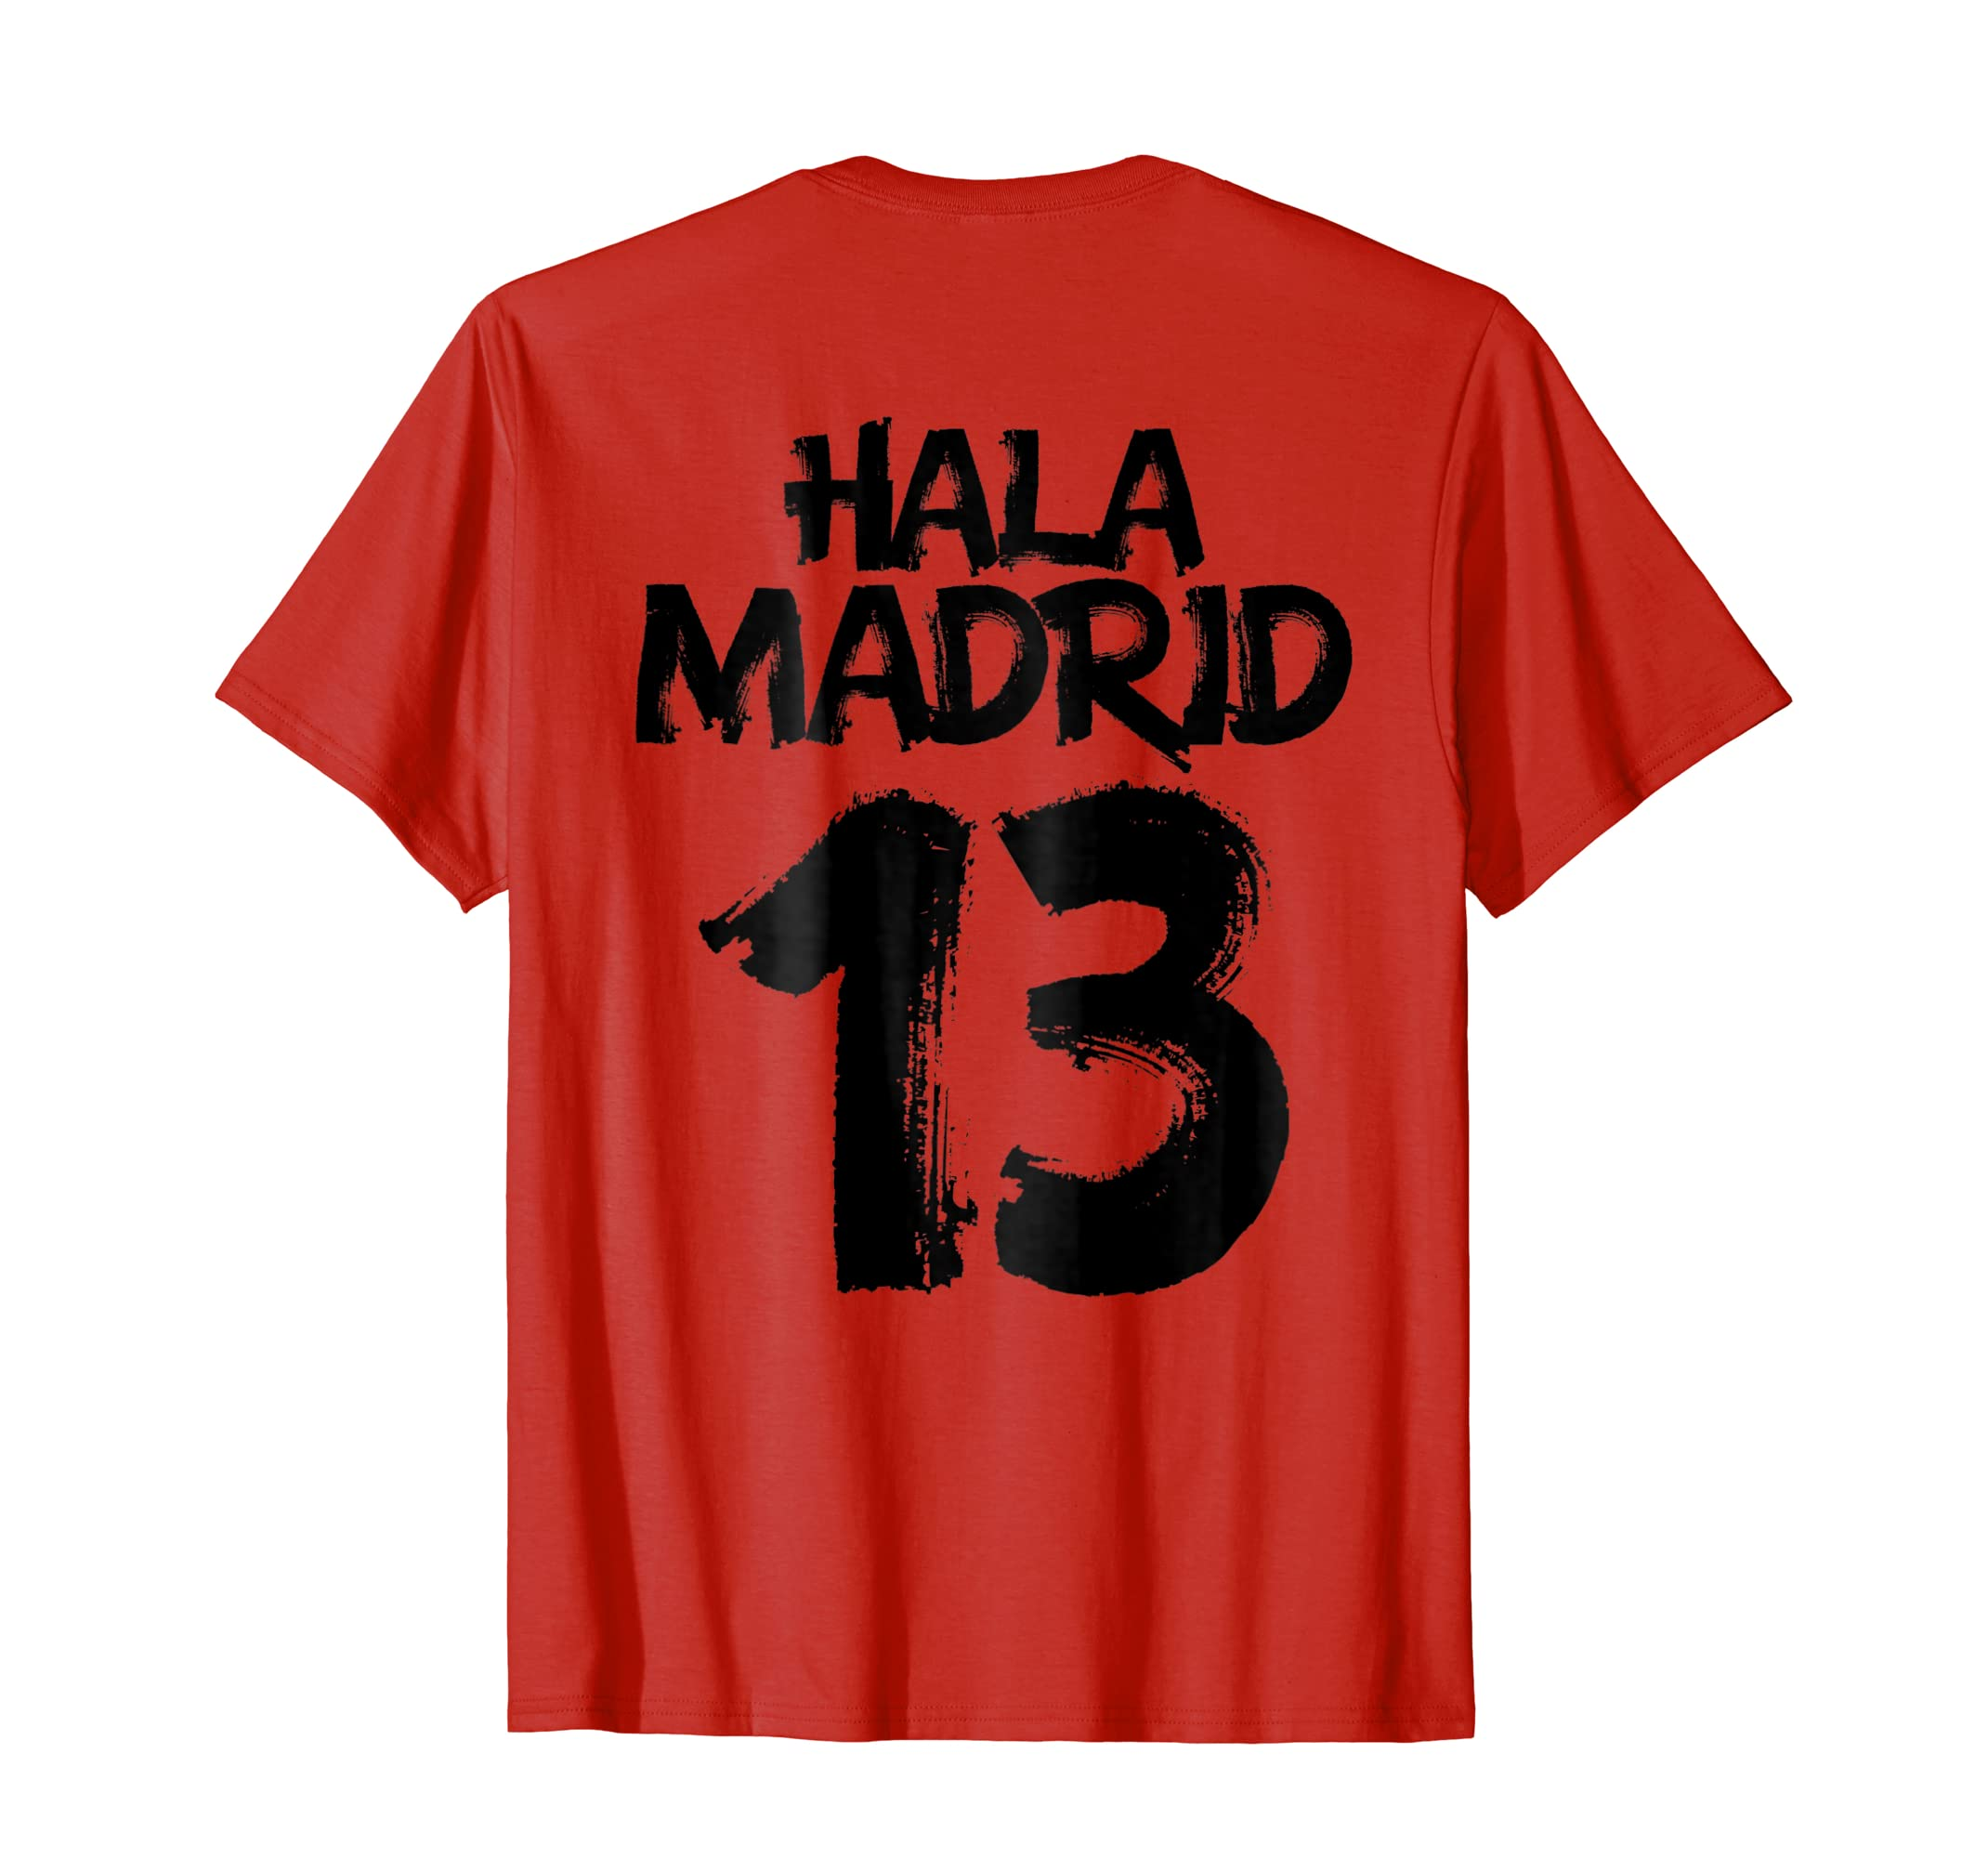 Amazon.com: La Decimotercera t-shirt men women kids Hala Madrid 2018: Clothing